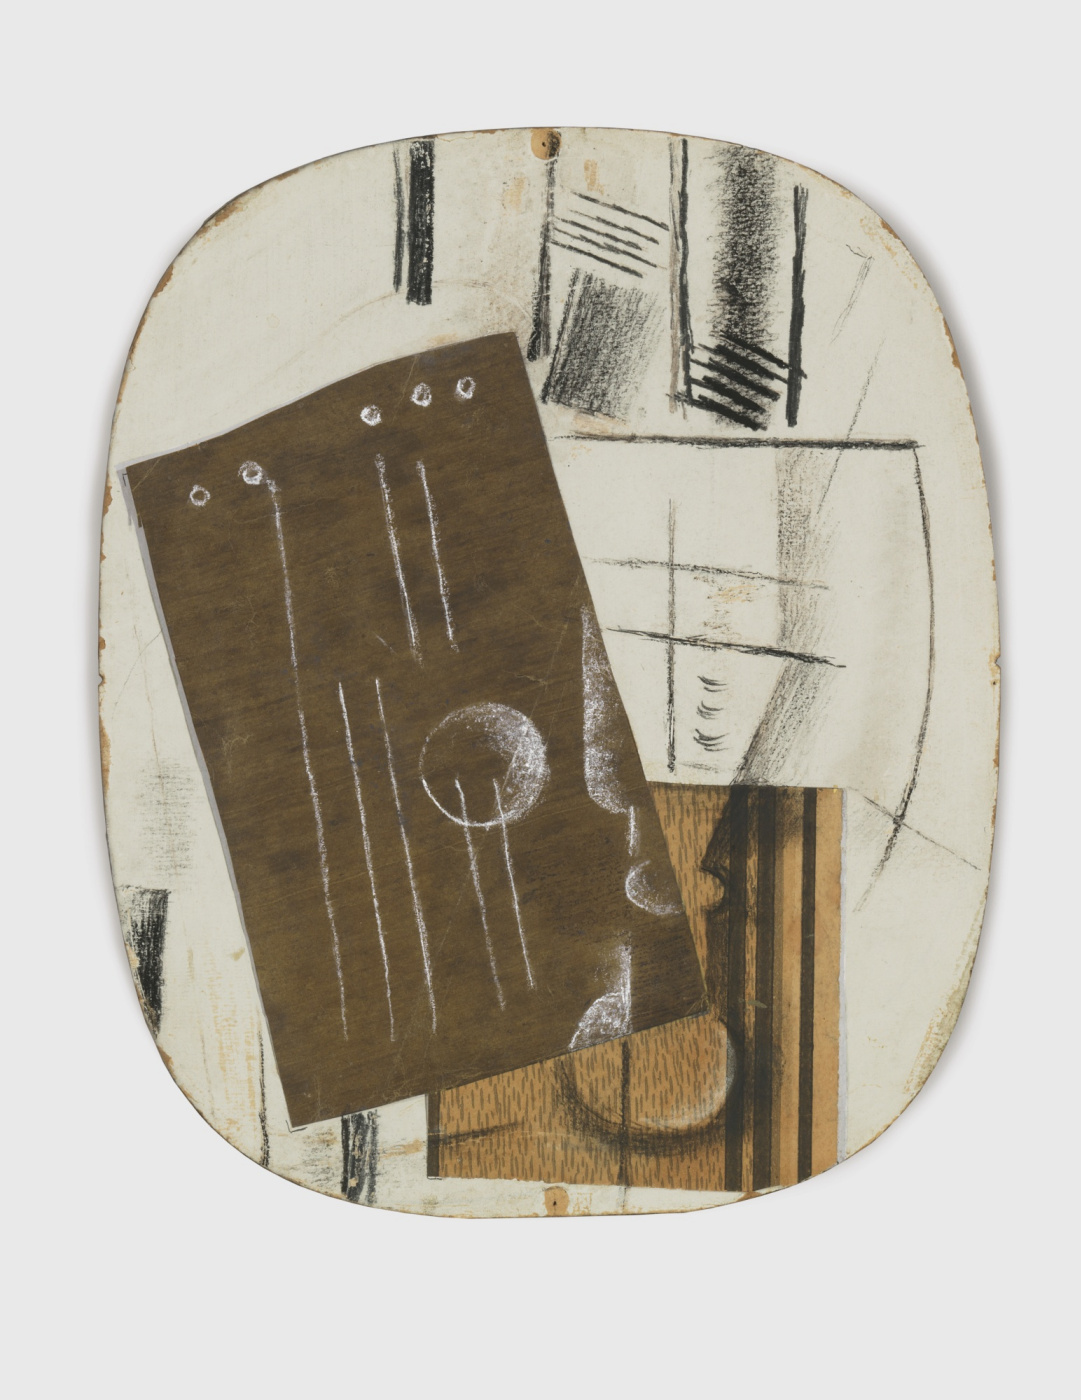 Georges Braque. Guitar and a glass of